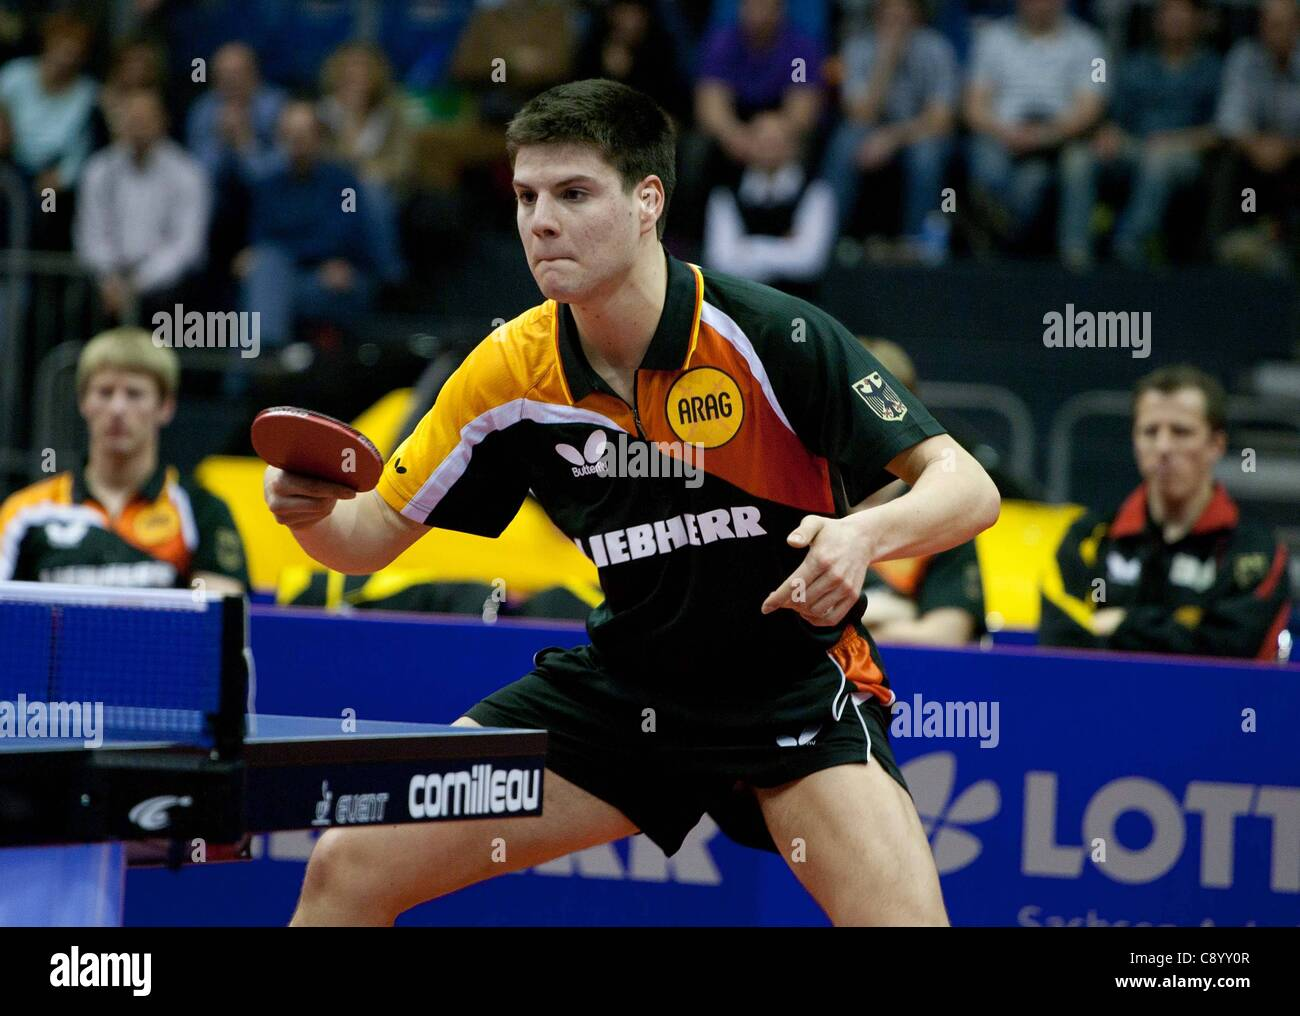 05 11 2011 Magdeburg, Germany. Dimitrij Ovtcharov ger Semi-finals Germany vs China Table Tennis   World team Cup - Stock Image